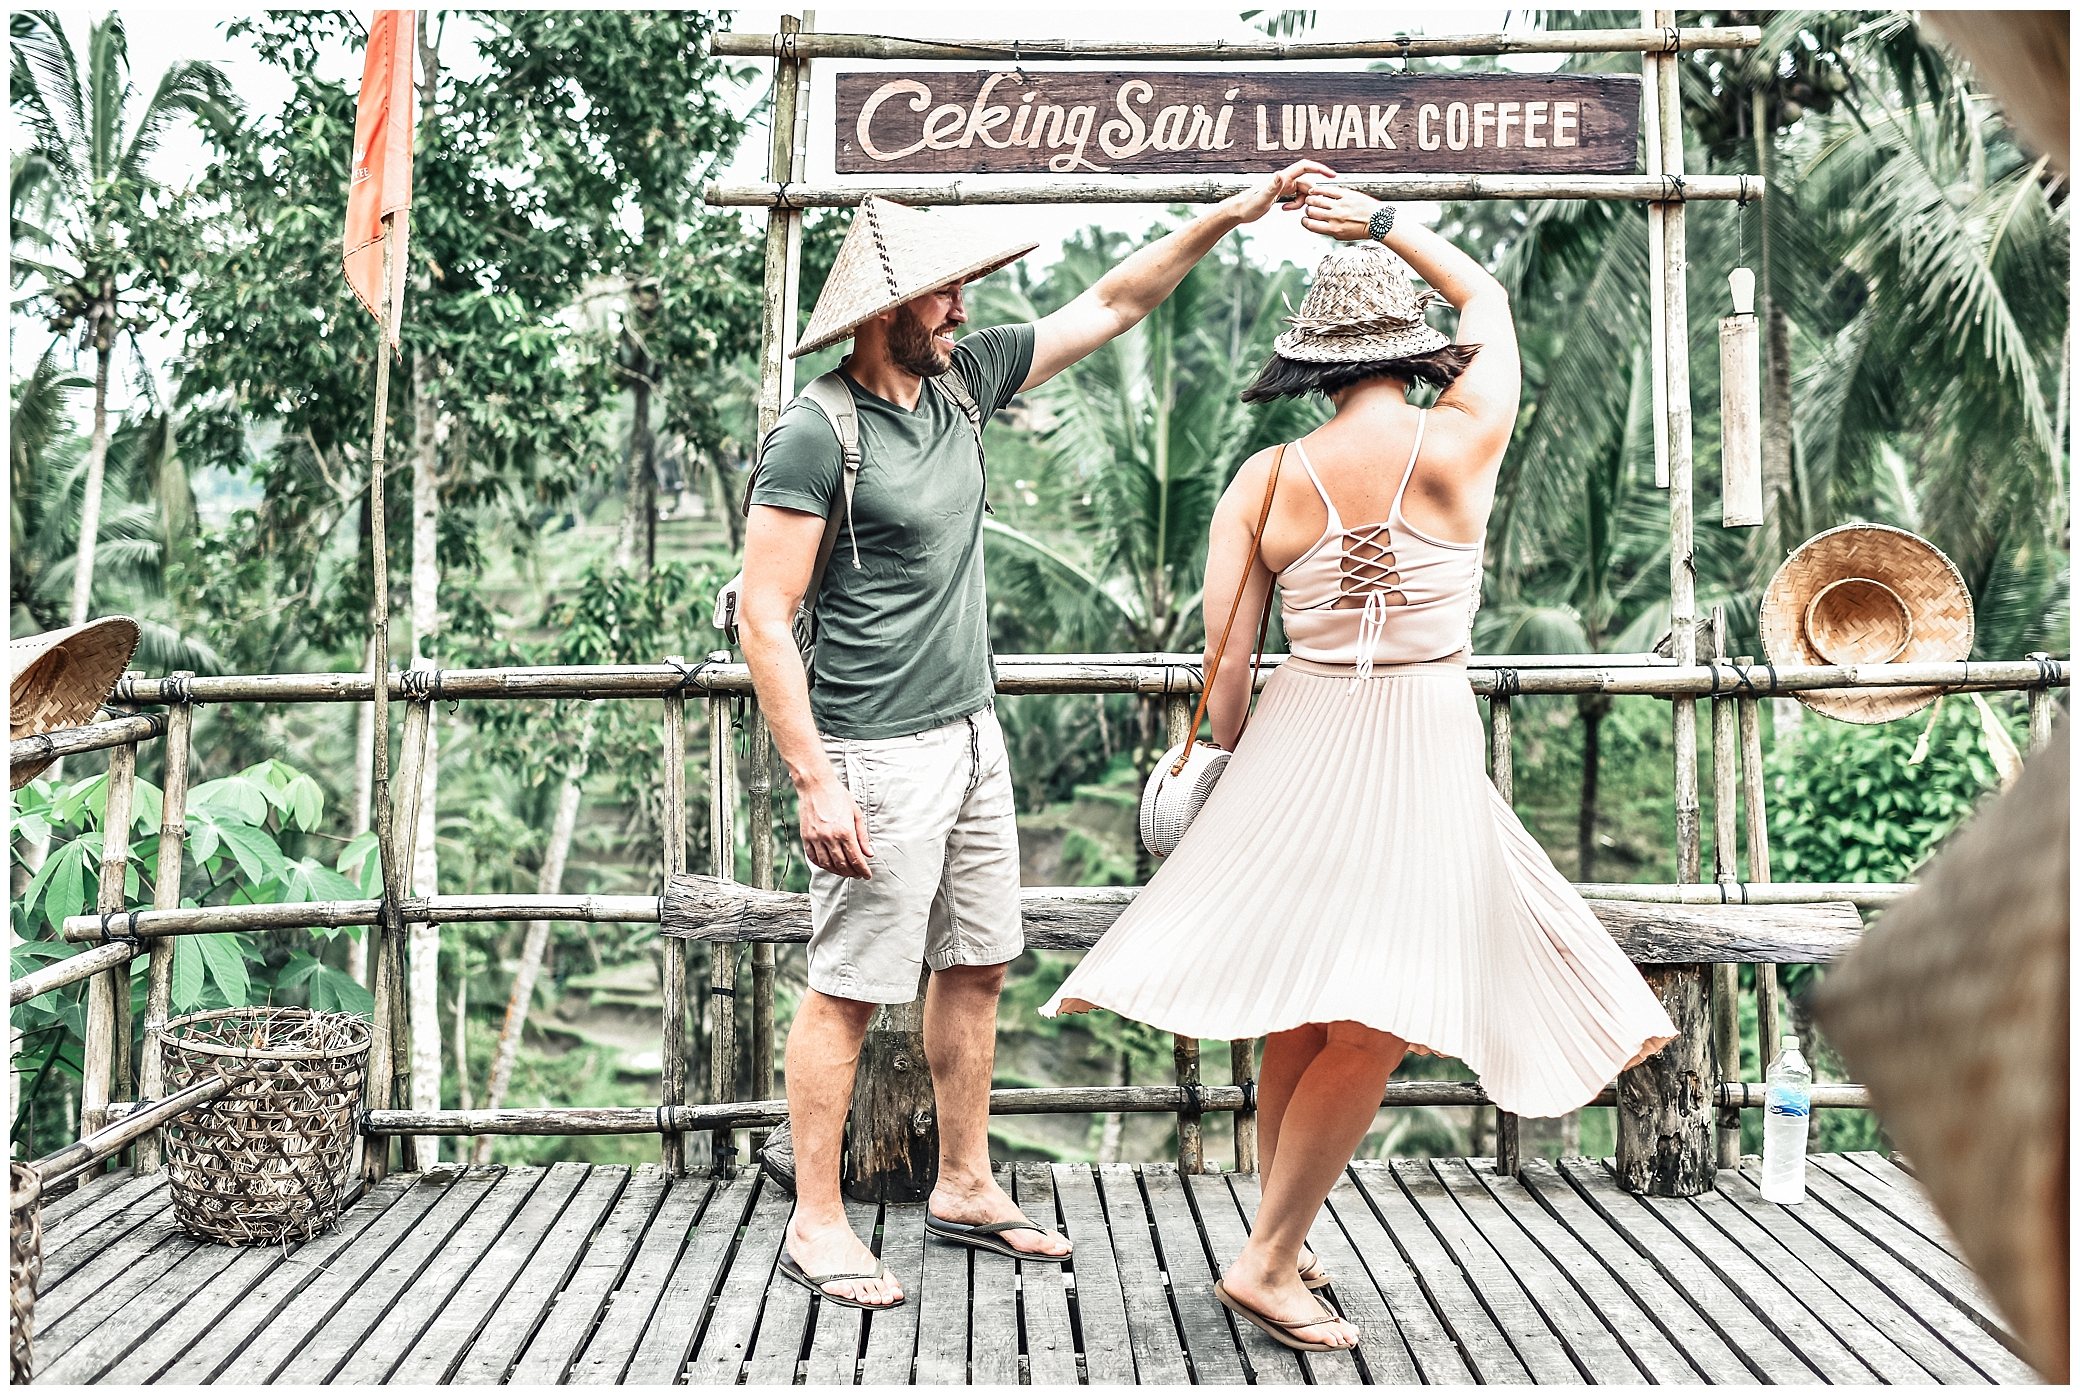 Top 10 Awesome Things To Do In Ubud_0005.jpg